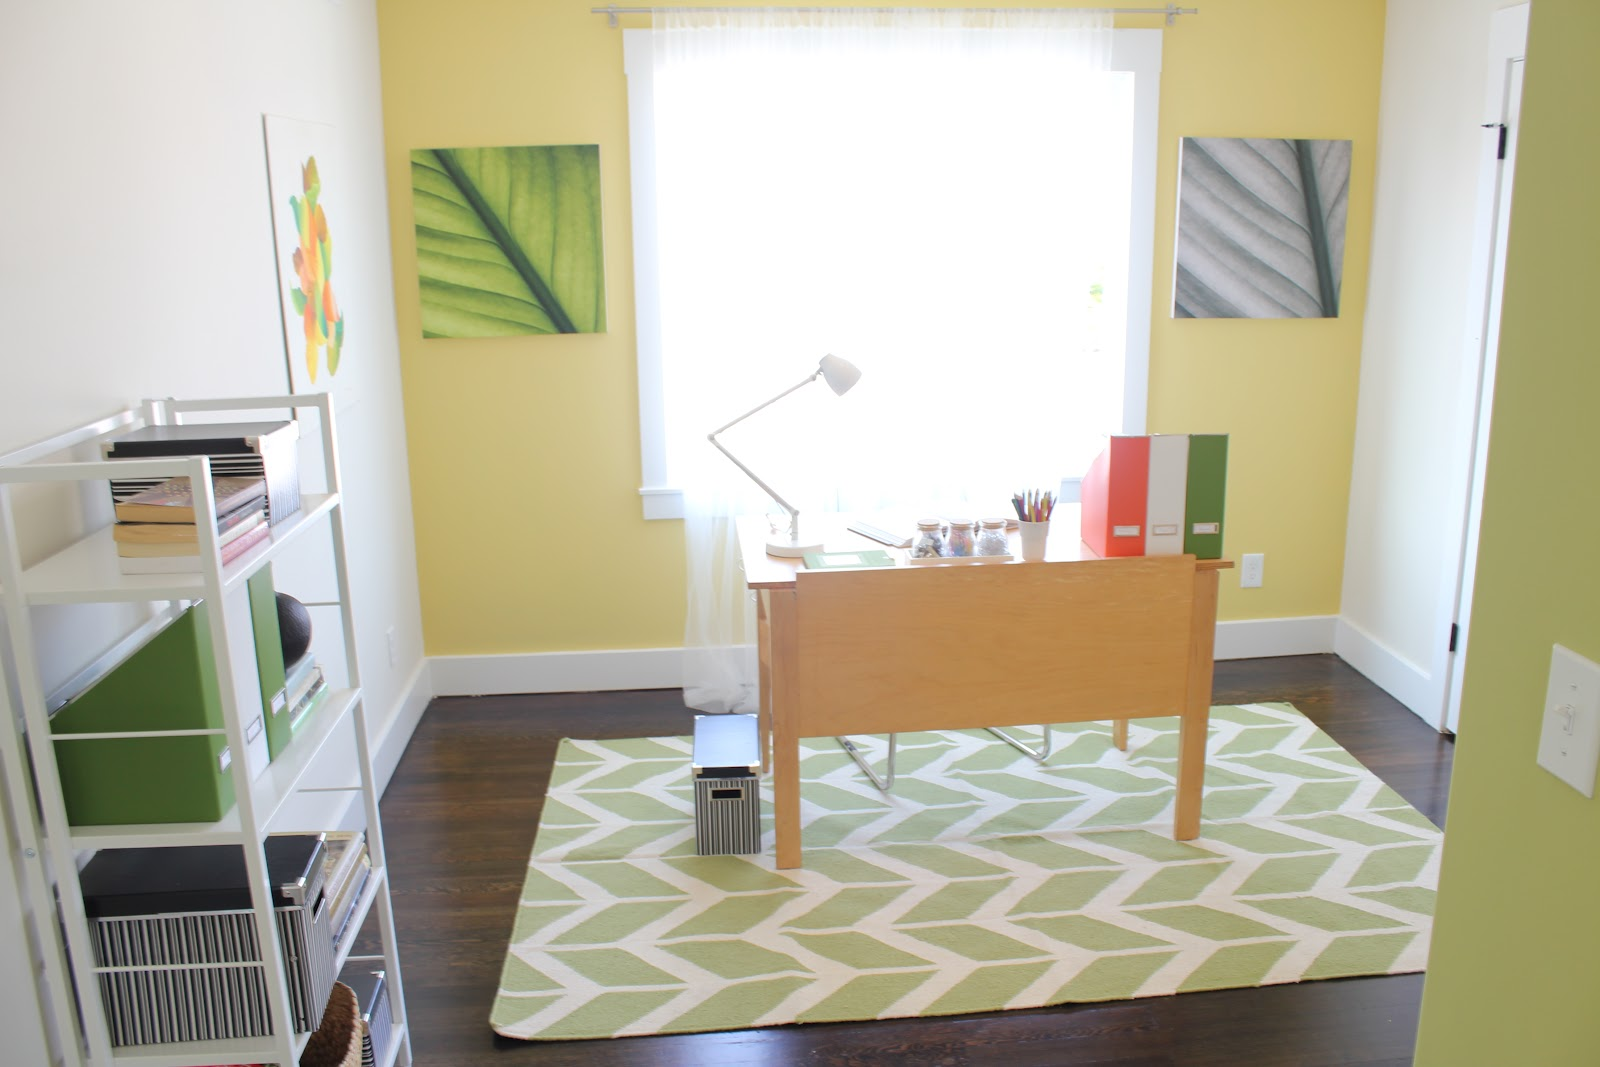 We Featured Green On The Upstairs Wall Kids Room Walls Photo Below And In Pieces Such As Rugs Artwork Books Throughout Home